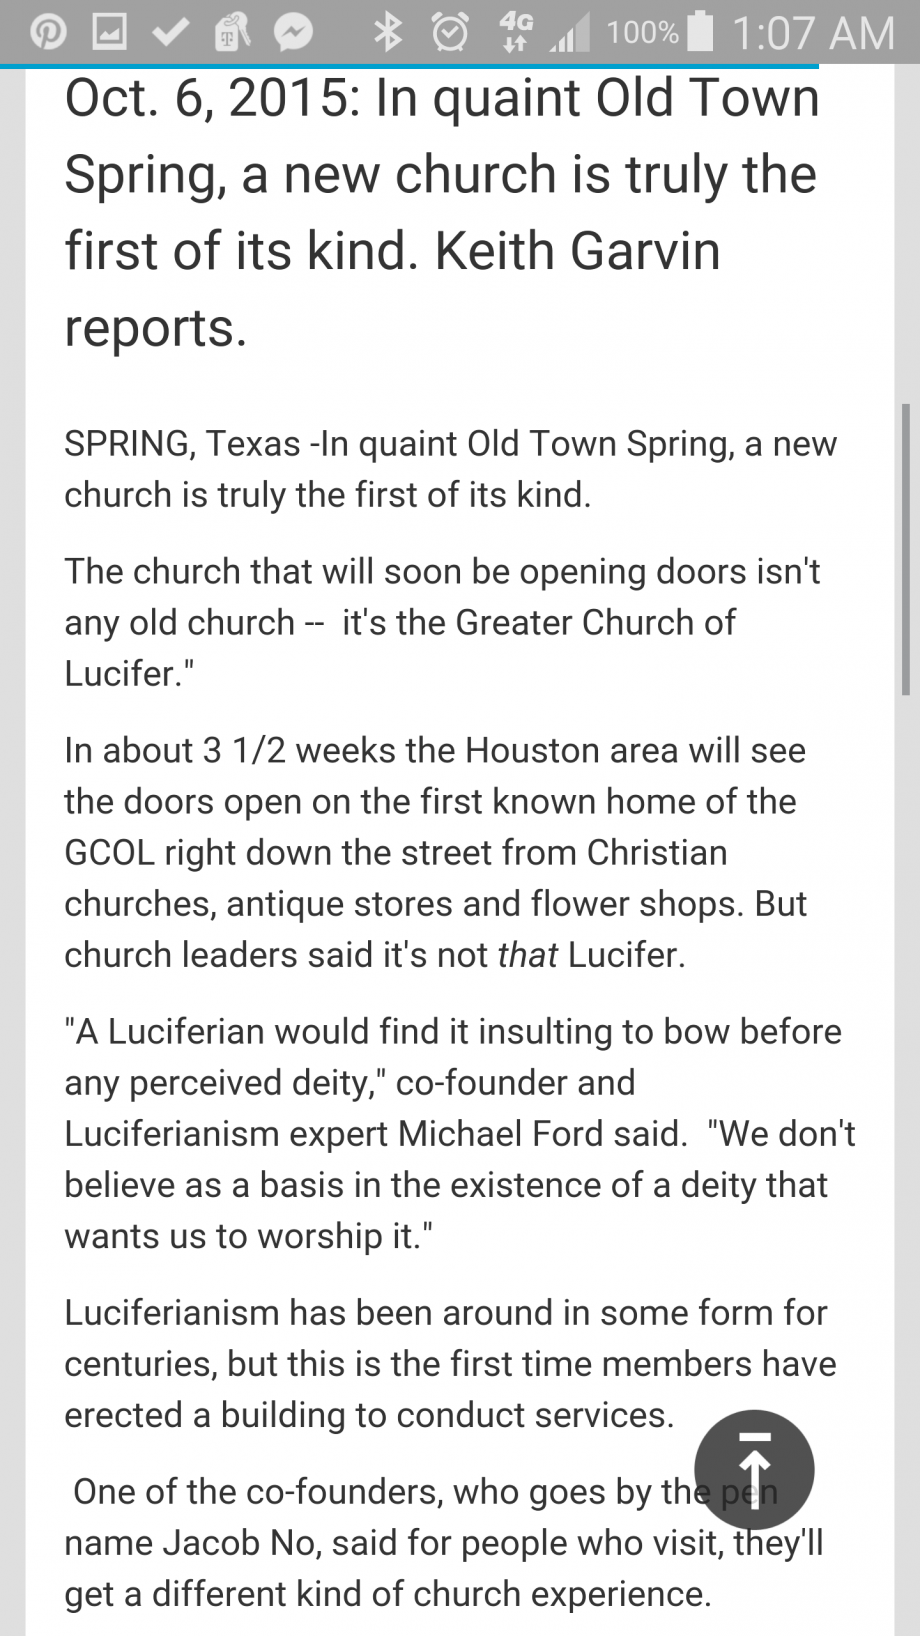 Luciferian Church in old Town Spring - Petitions24.com